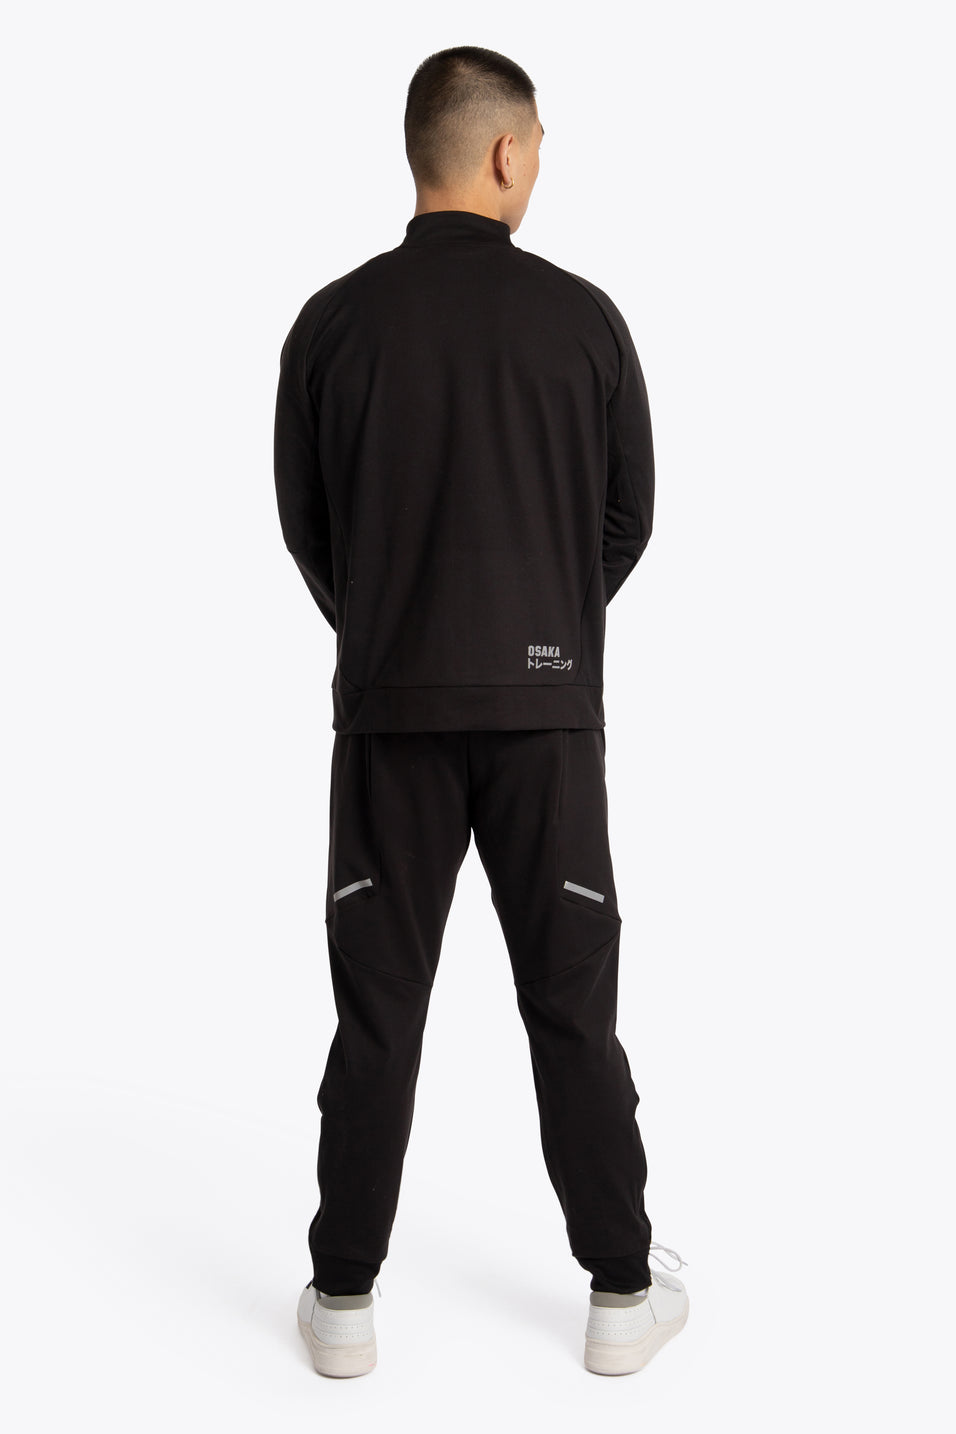 Osakaworld.com track pants men